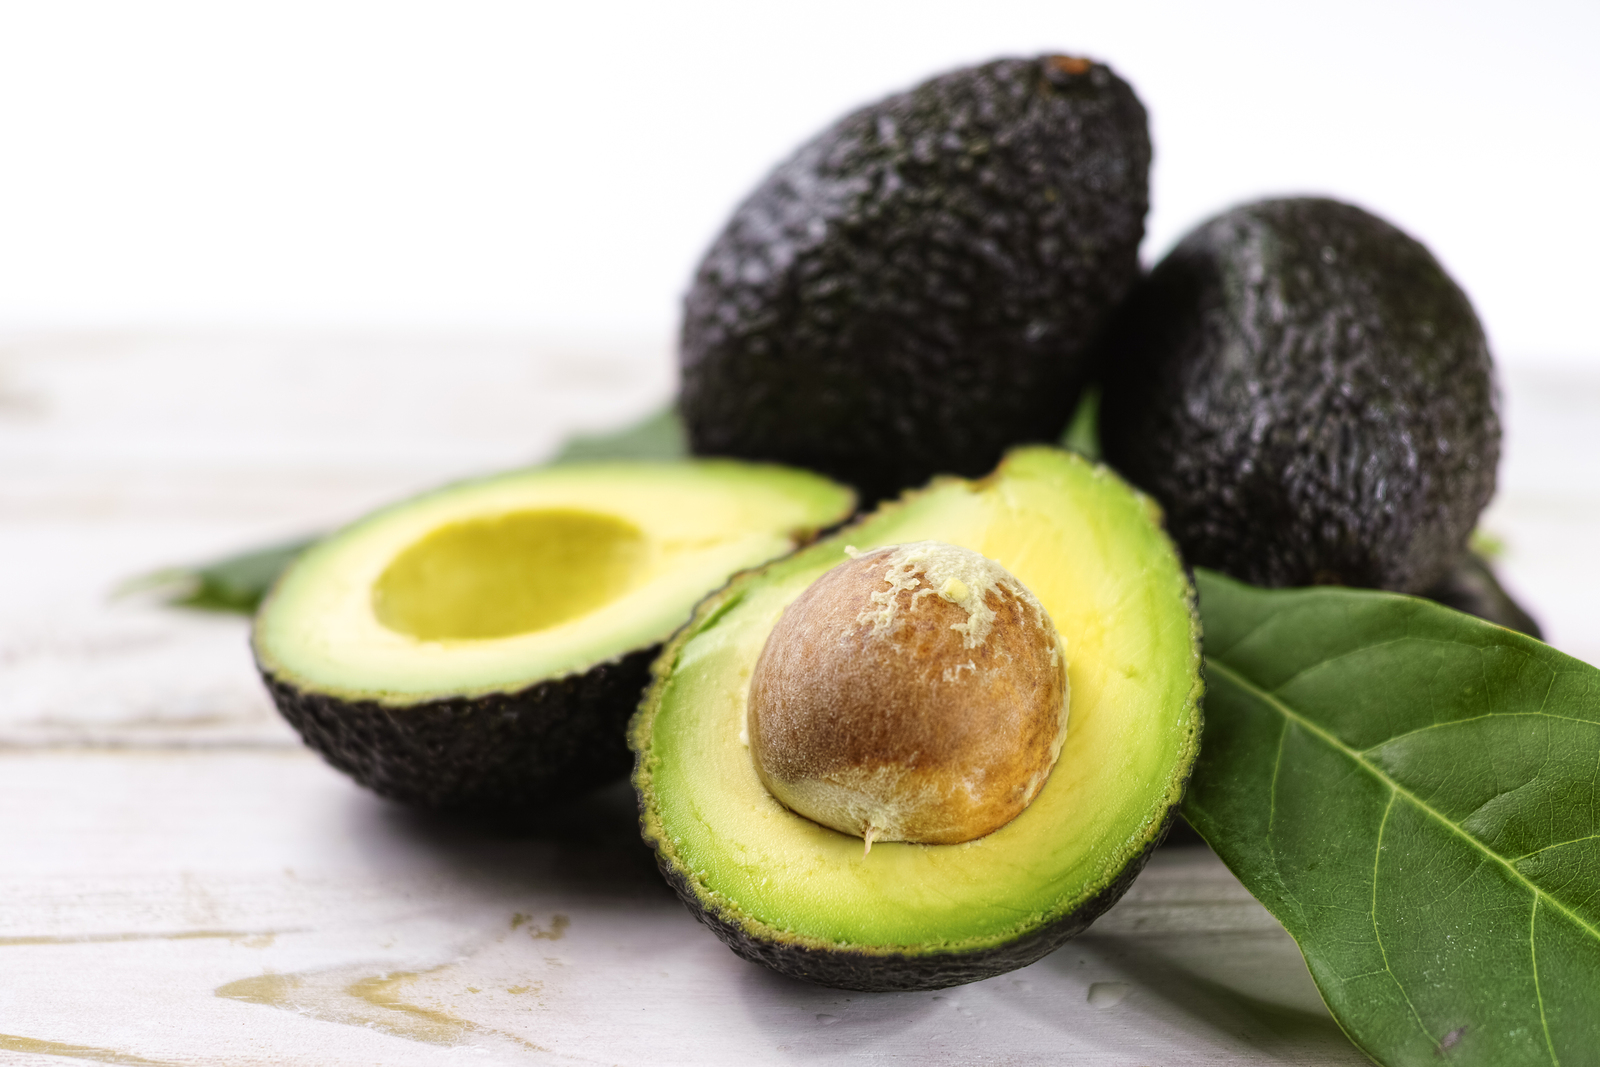 Eating Avocados Can Improve Digestive Health